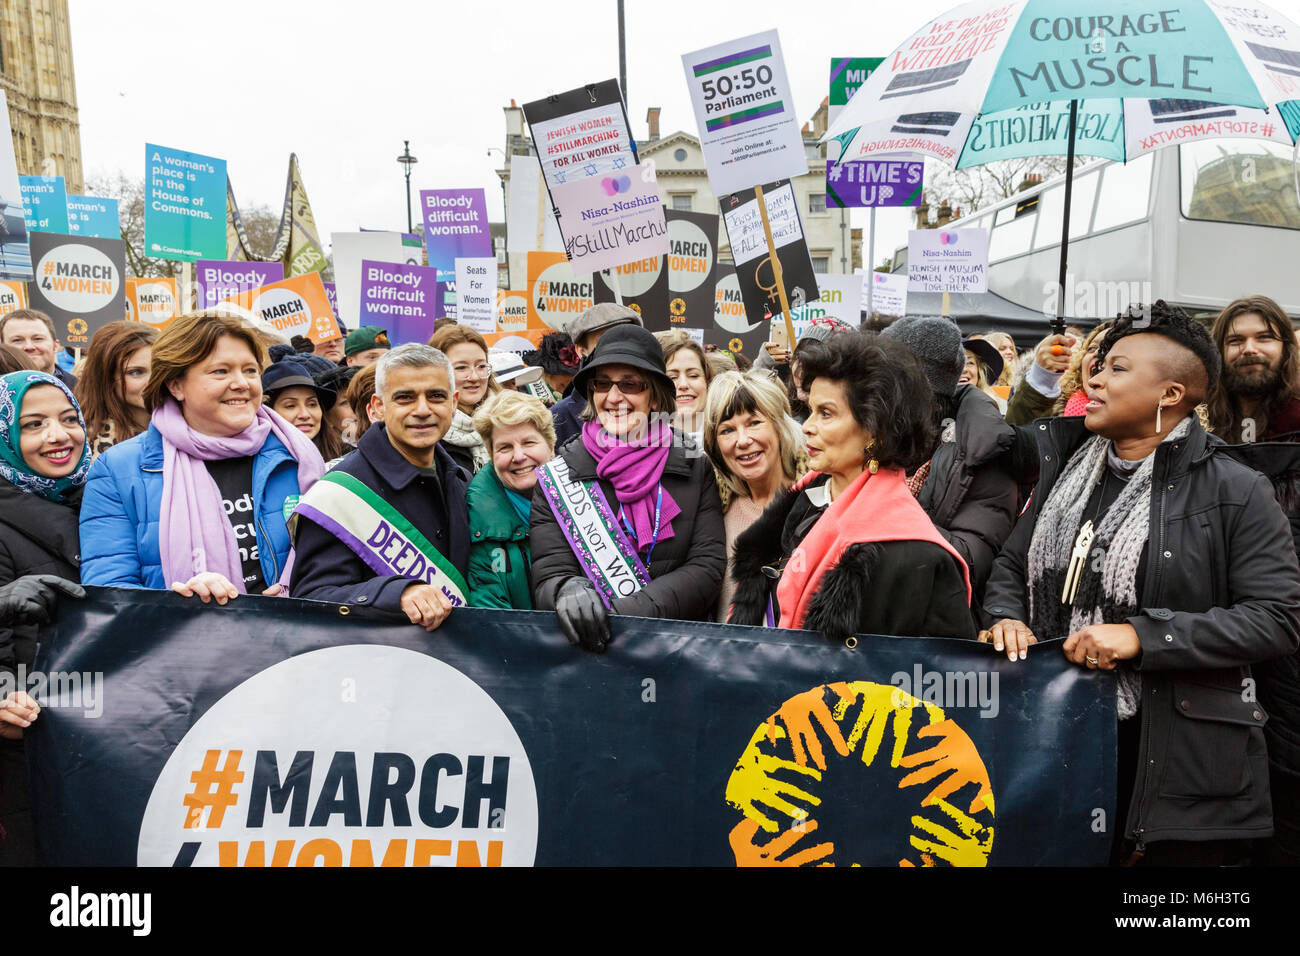 Westminster, London, 4th March 2018. Mayor Sadiq Khan leads the march with presenter Sandi Tonsvik, activist Bianca - Stock Image